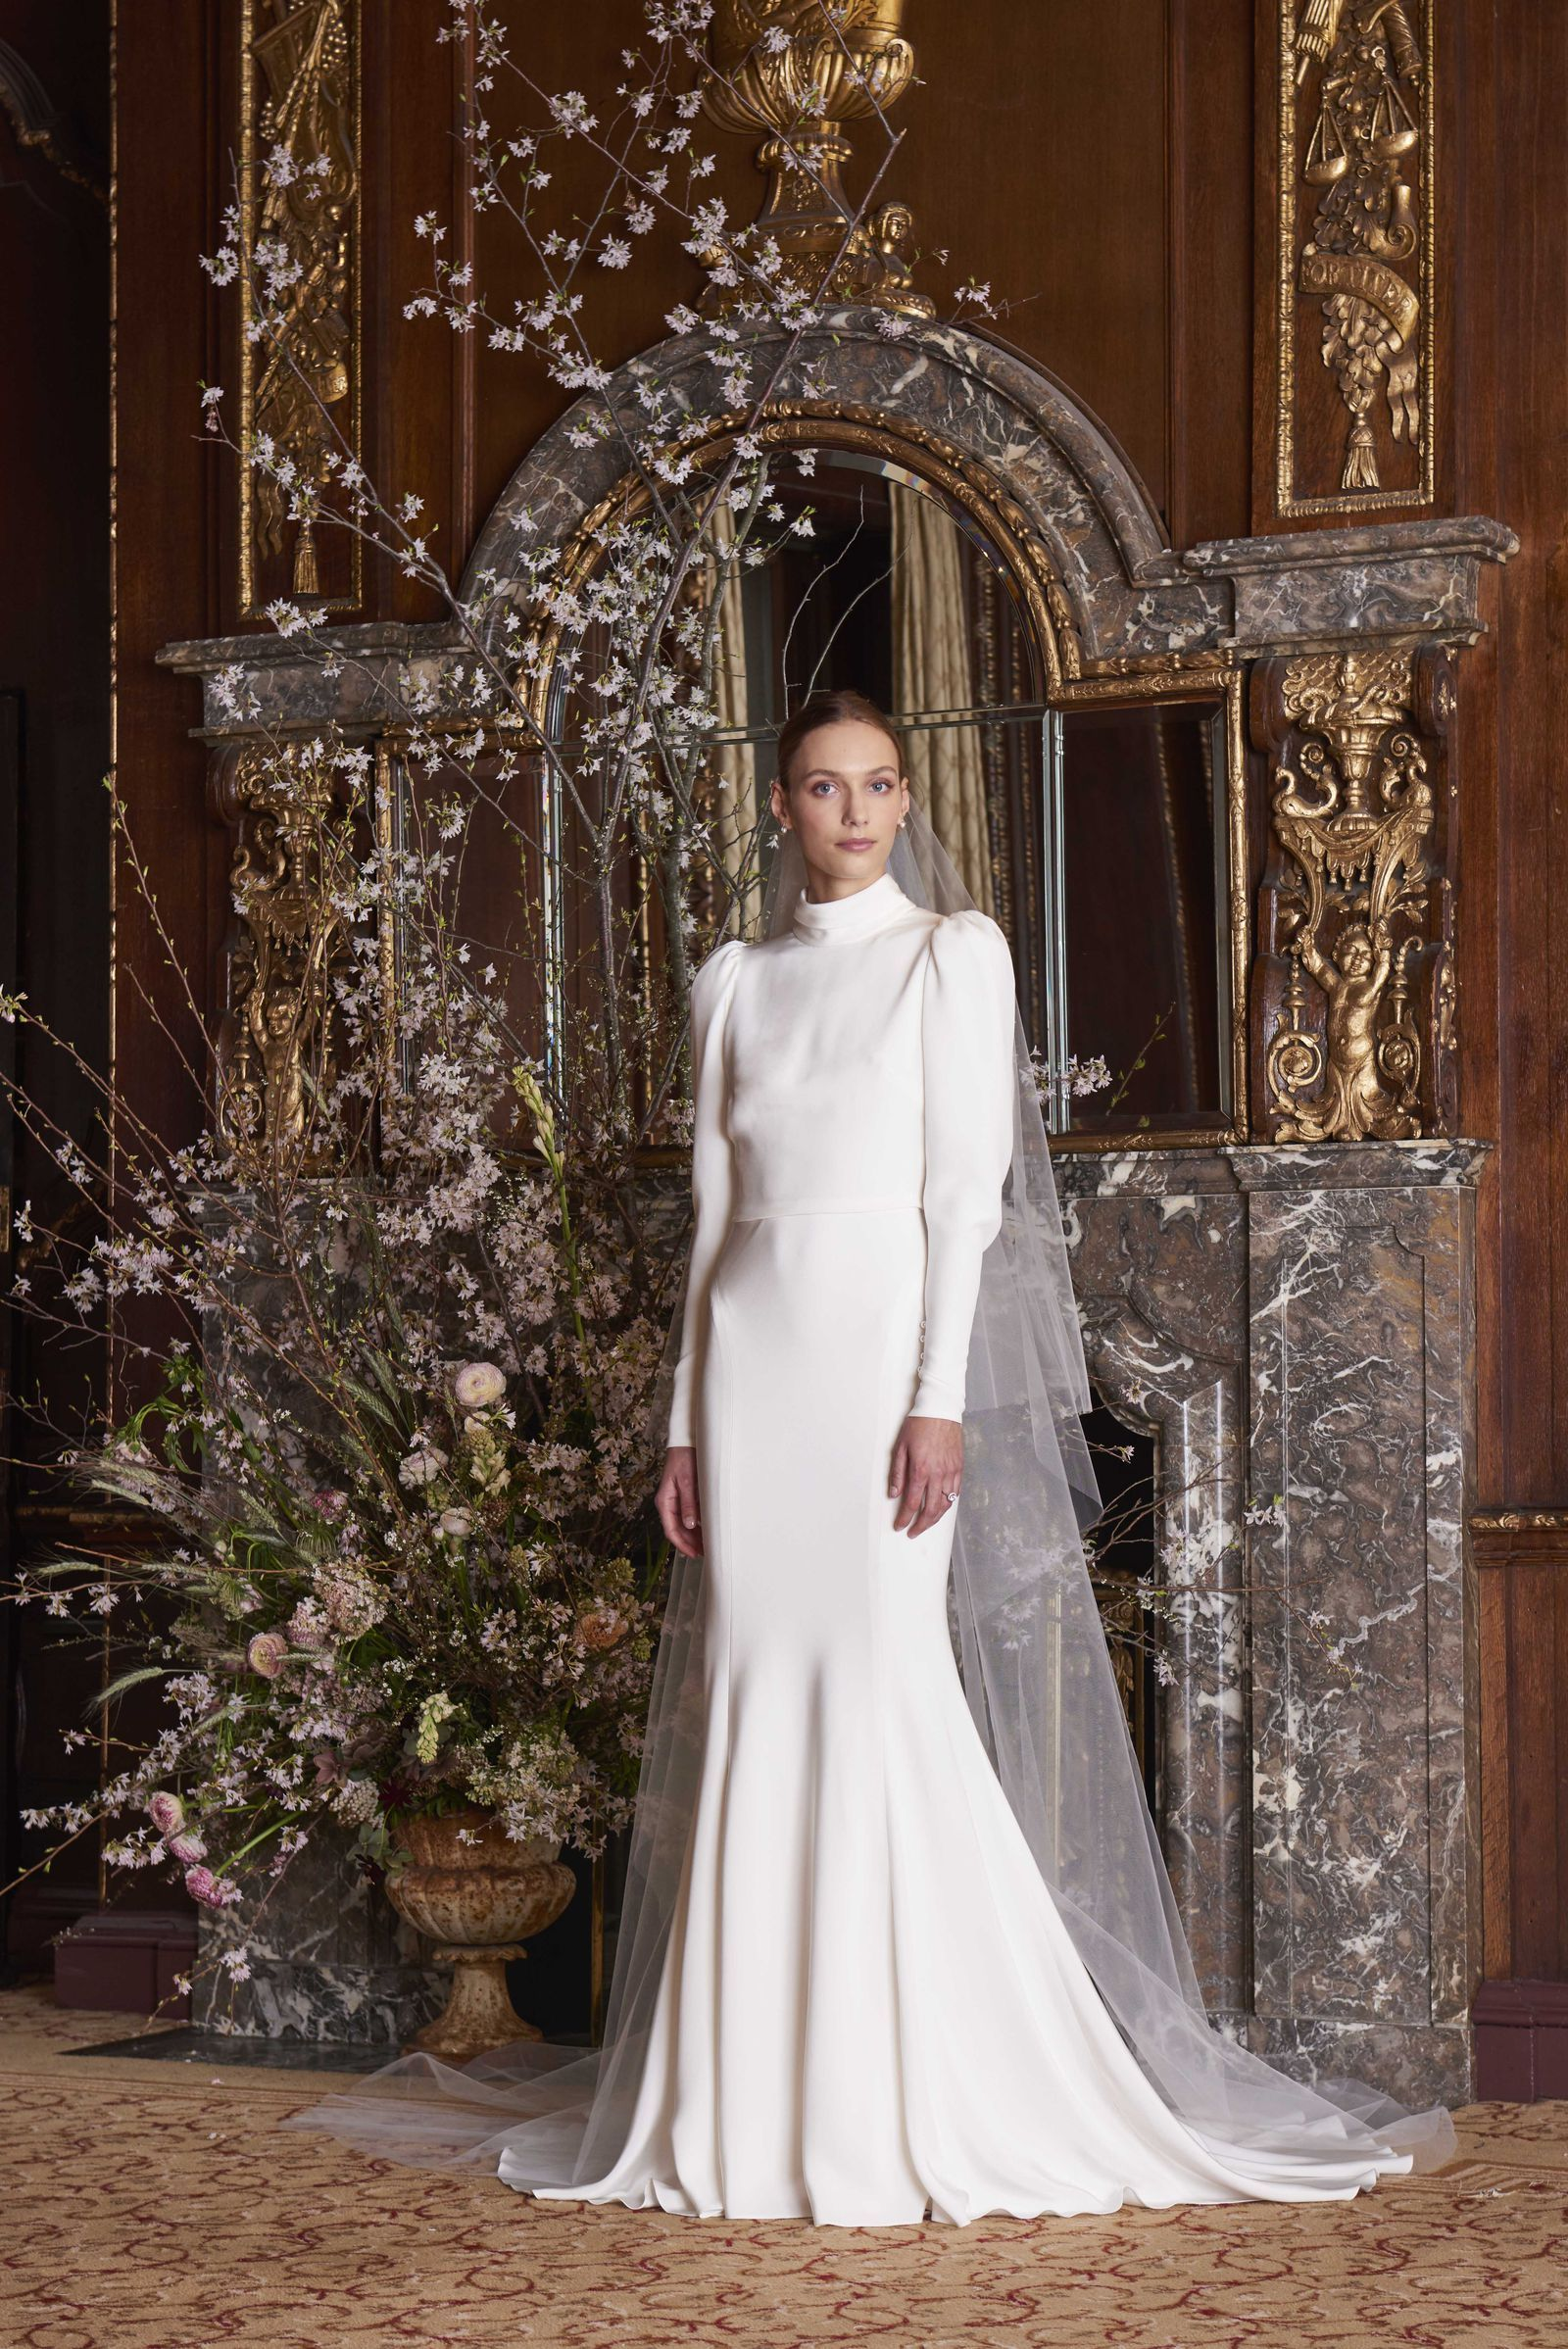 The Best Looks From Spring Bridal Week 2019 | Monique lhuillier ...